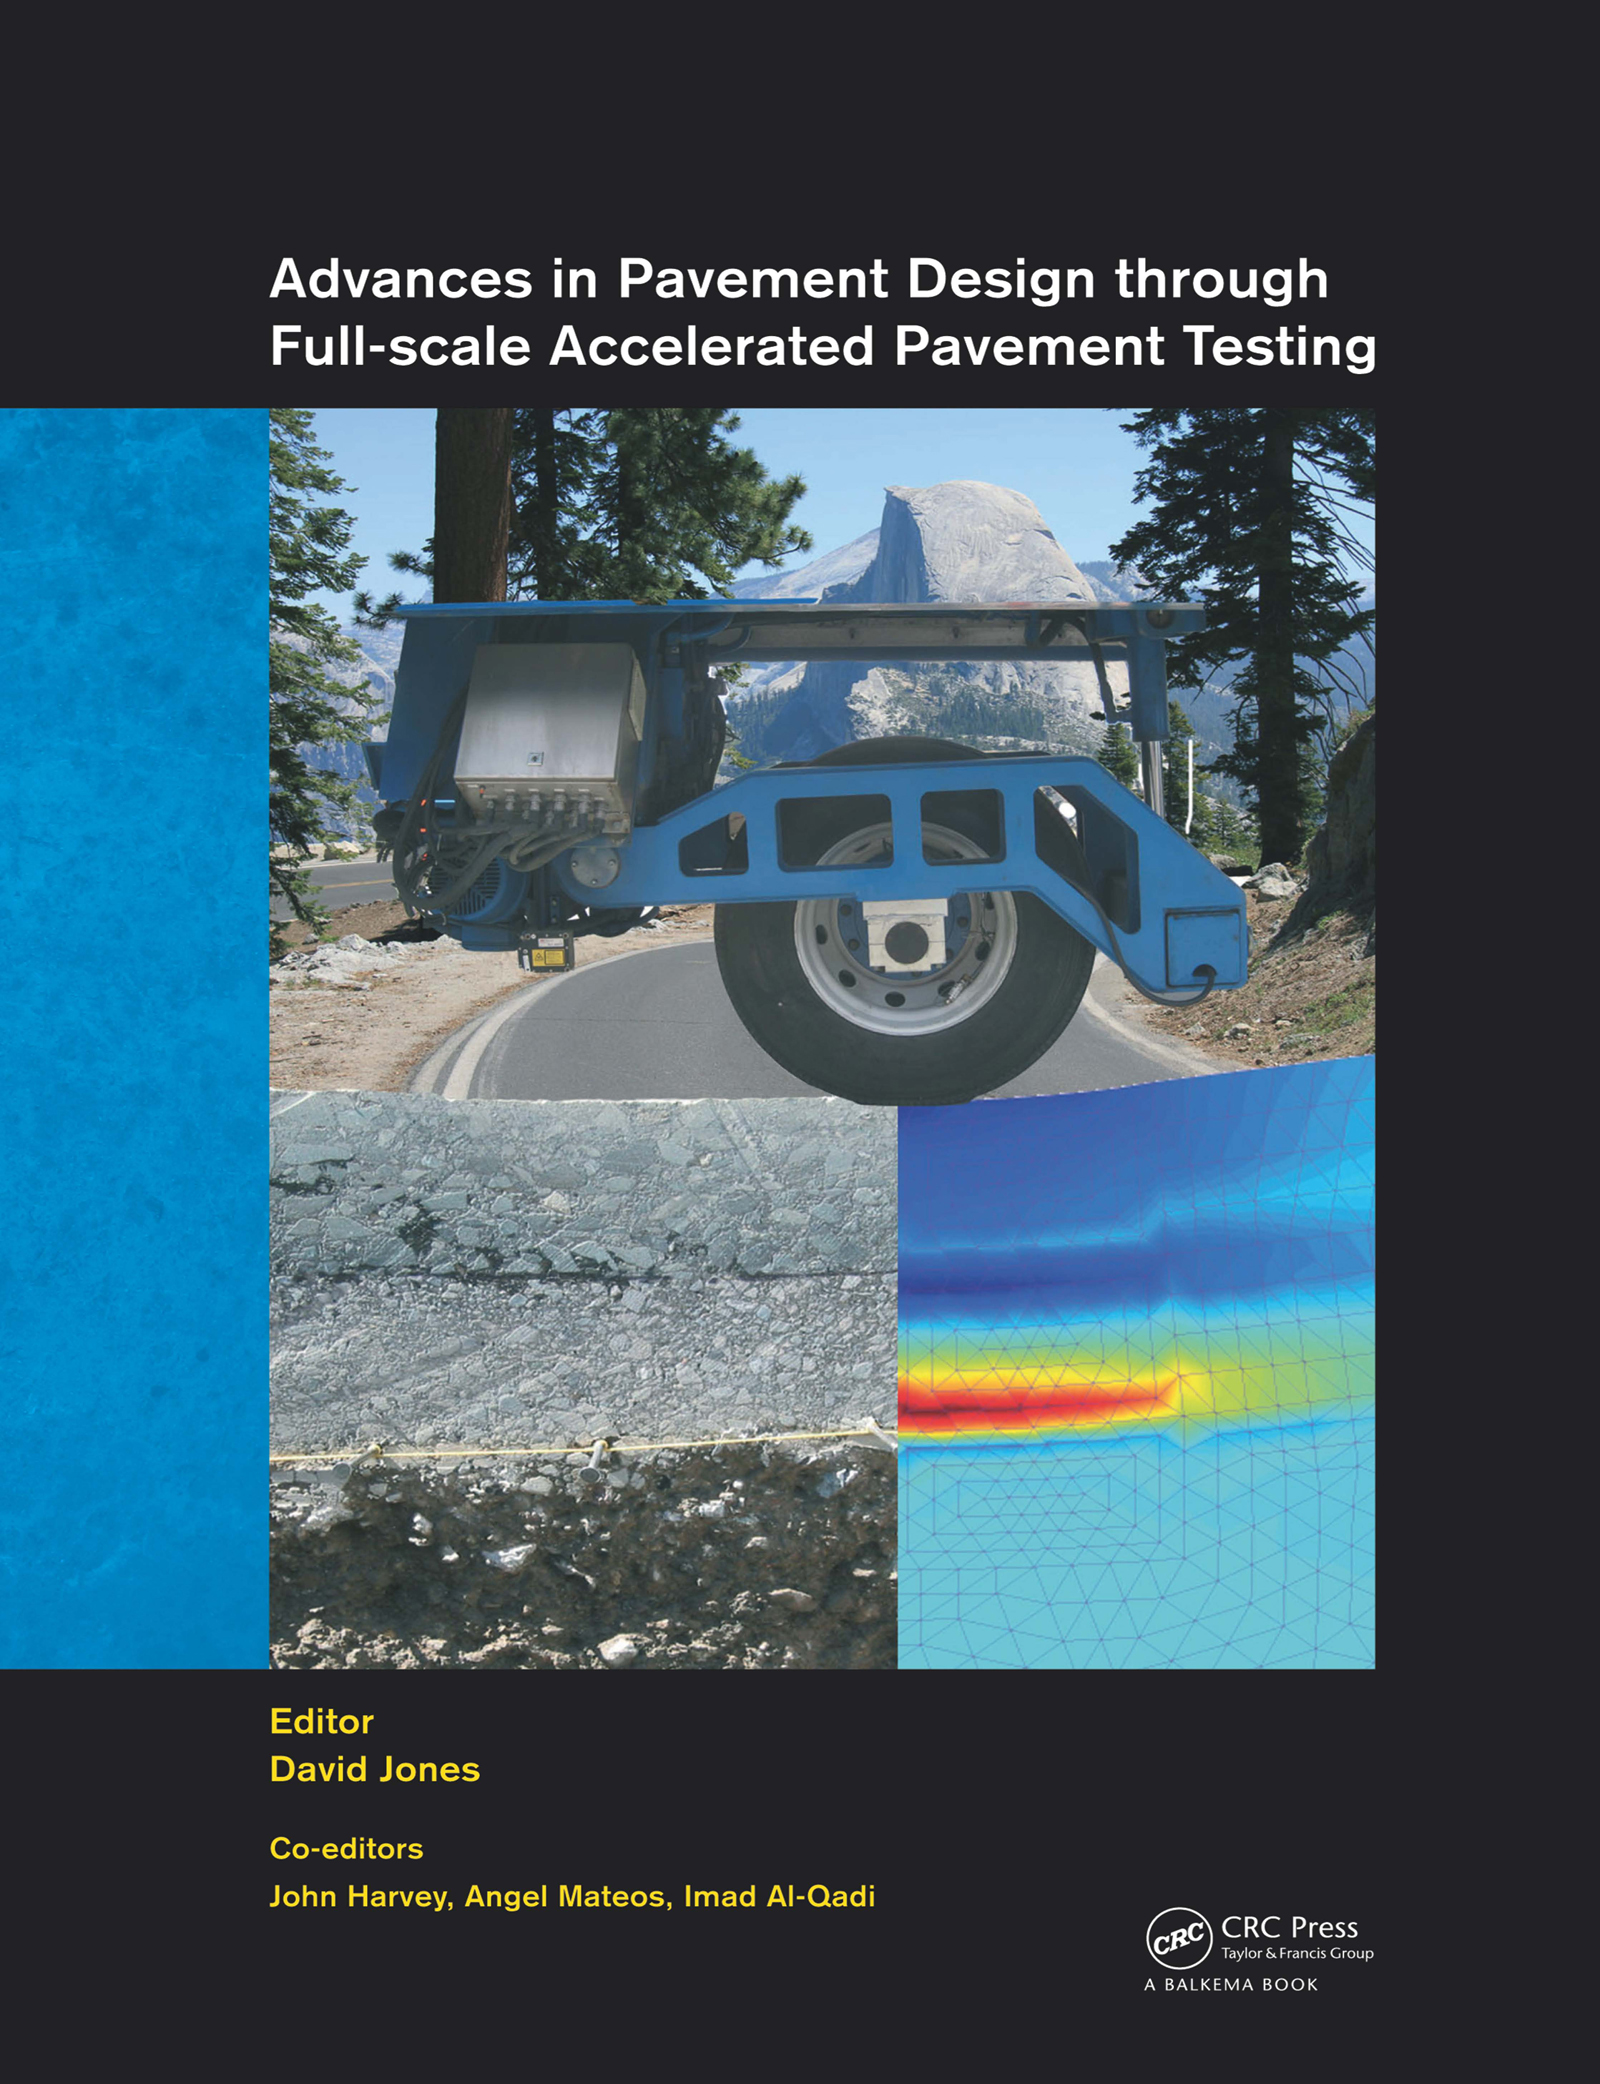 Advances in Pavement Design through Full-scale Accelerated Pavement Testing (Pack - Book and CD) book cover